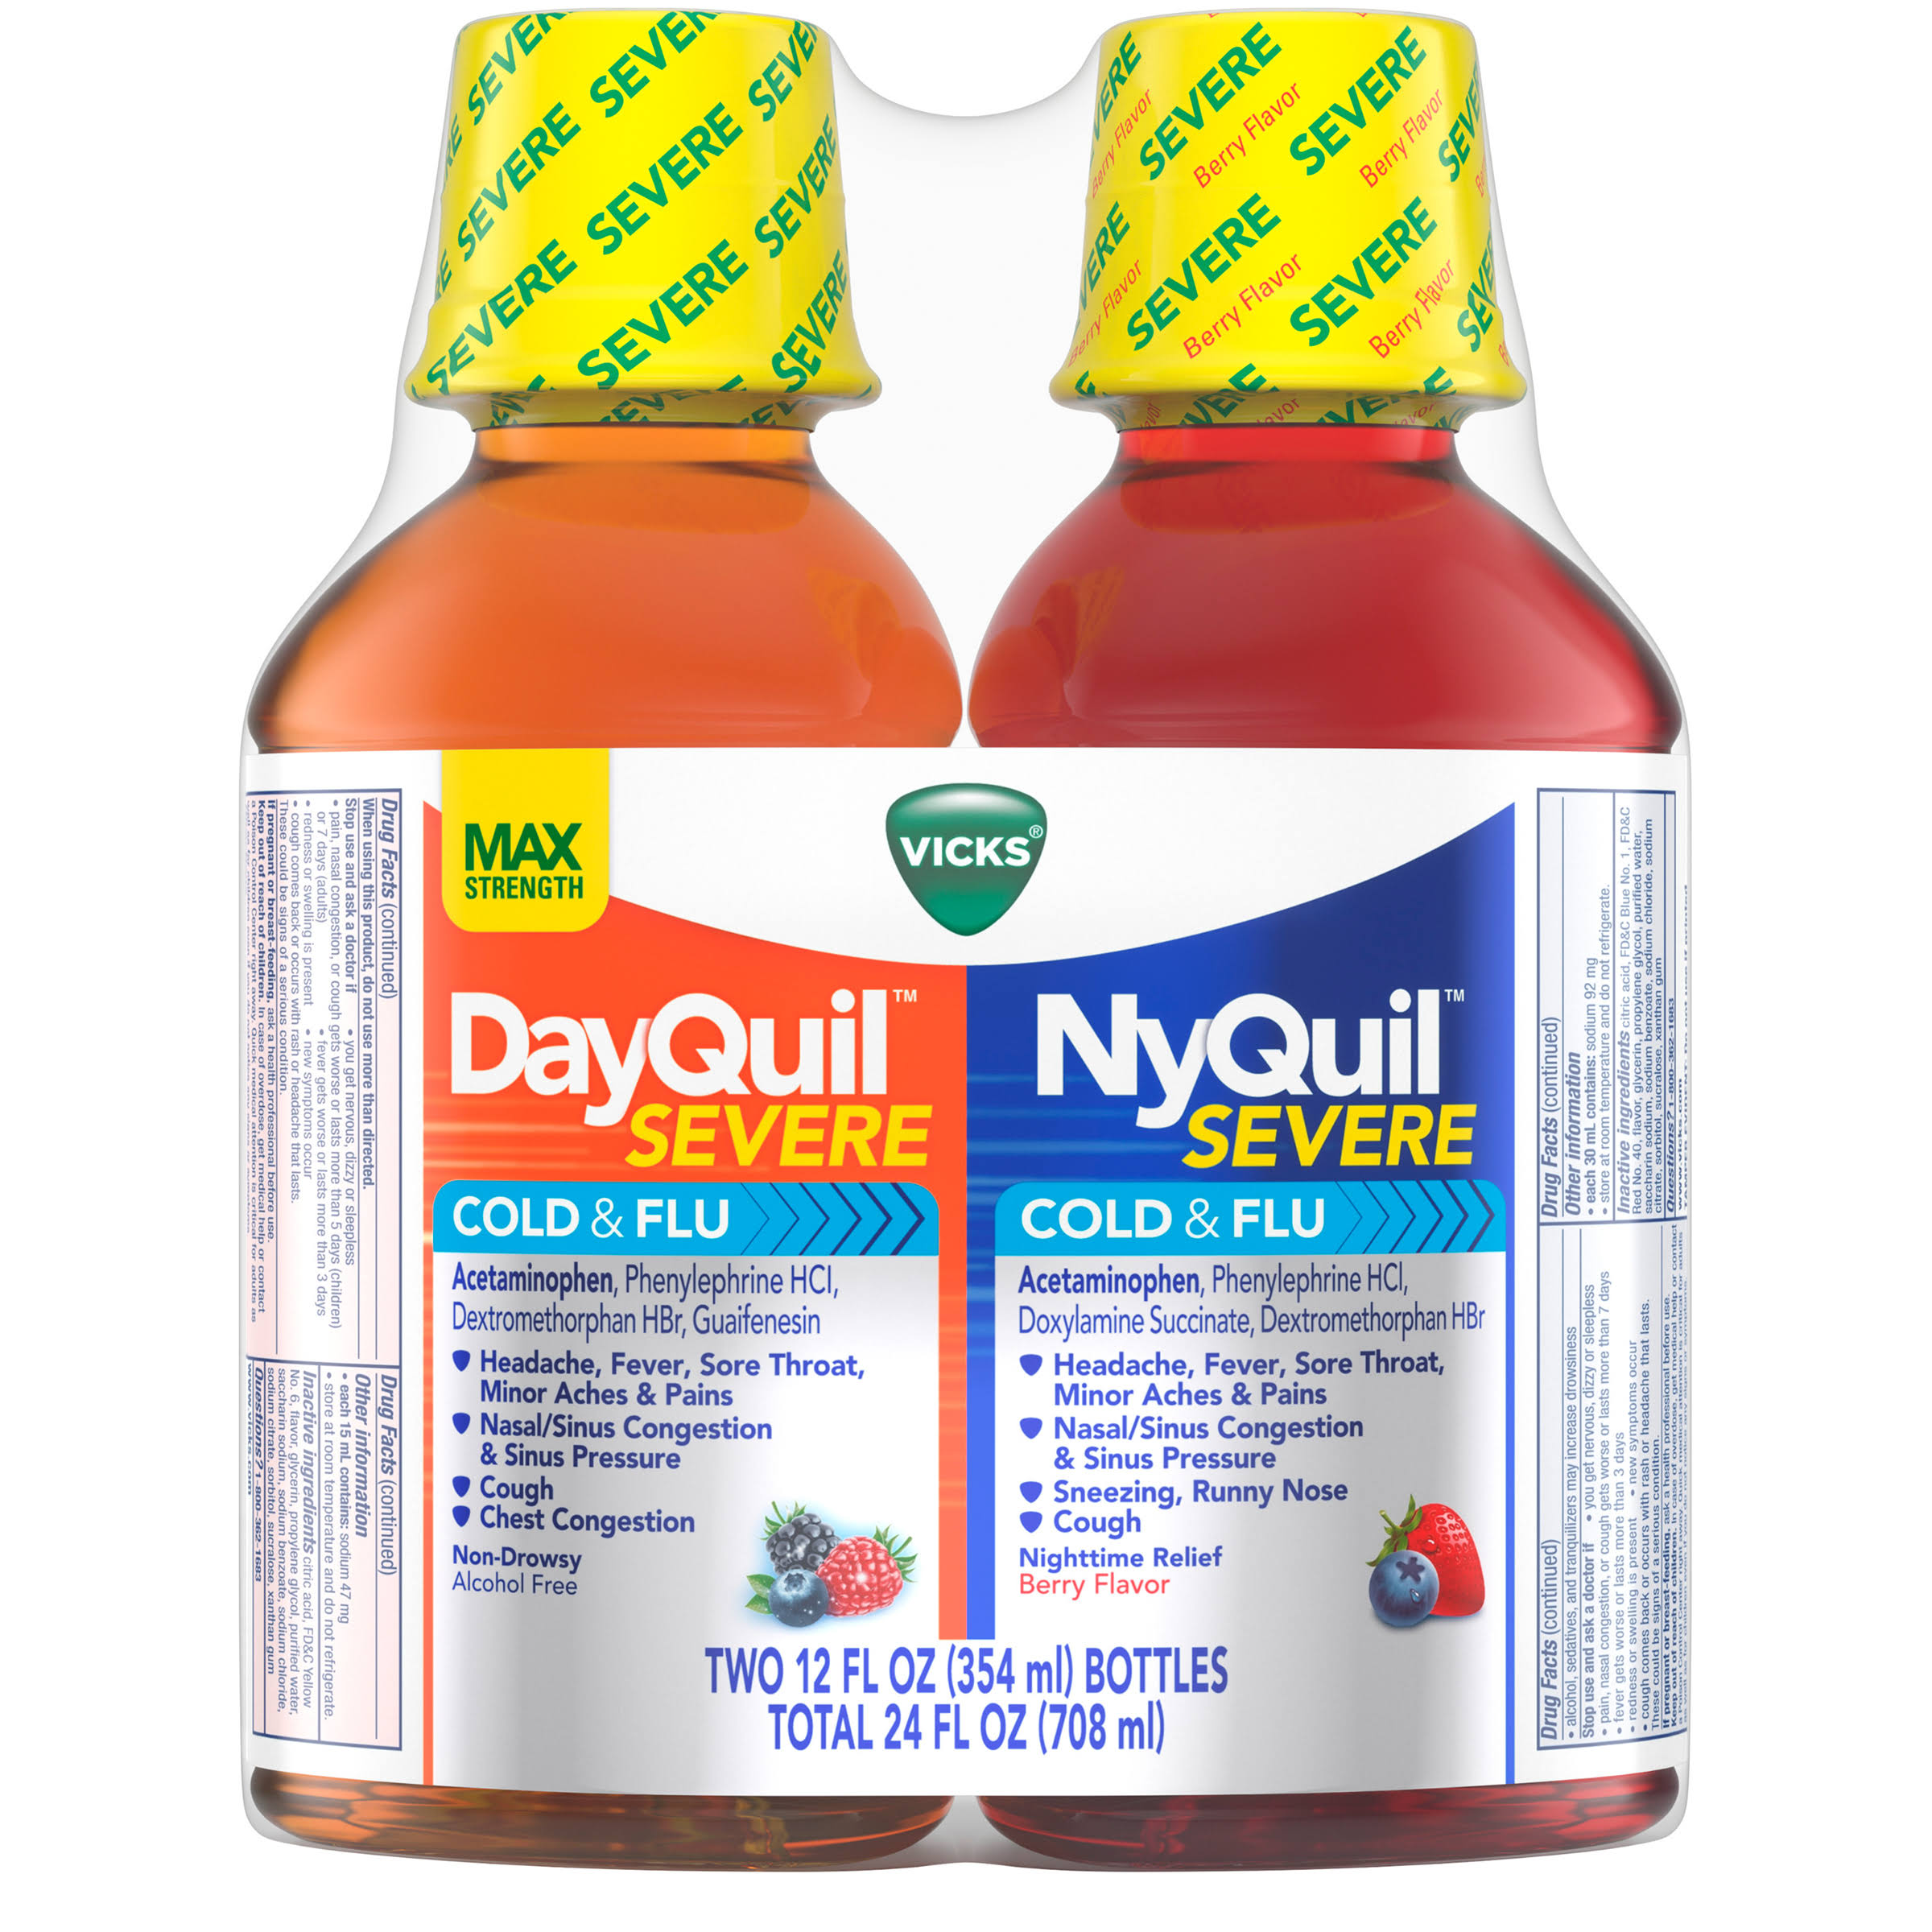 Vicks DayQuil and NyQuil Severe Cold & Flu Relief - 12oz, 2ct